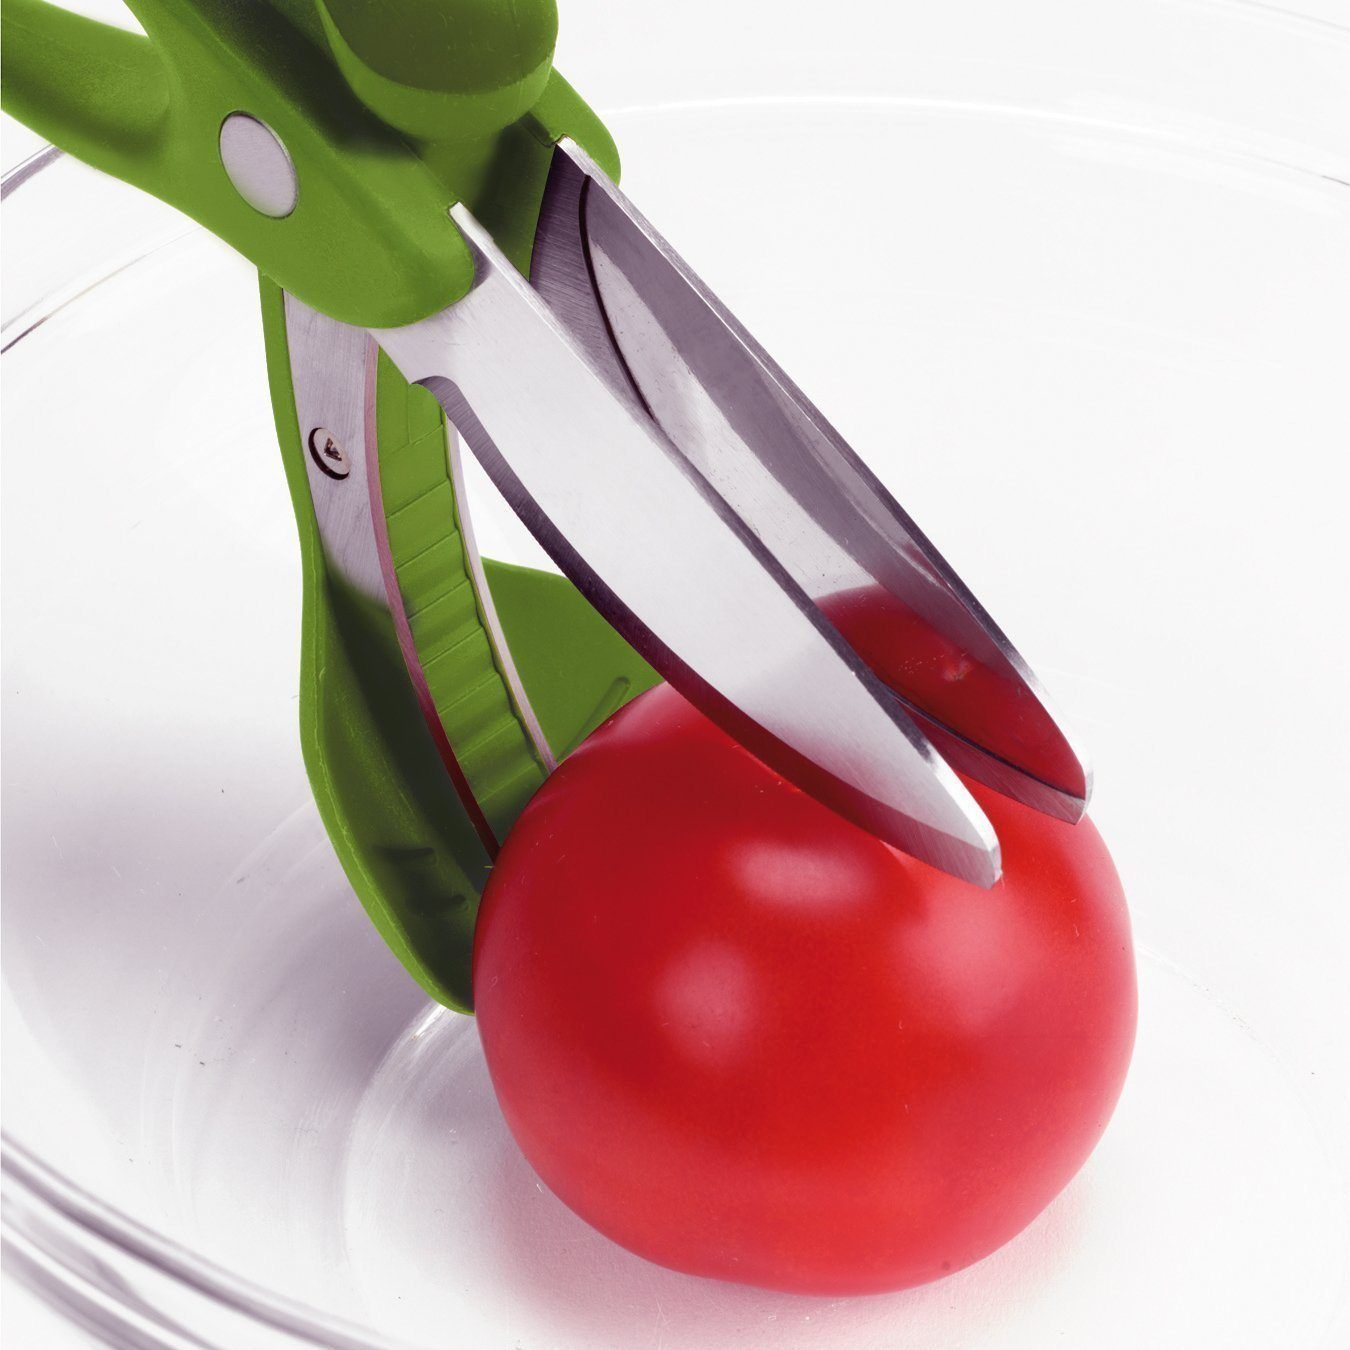 Salad Fruit Chop Scissor